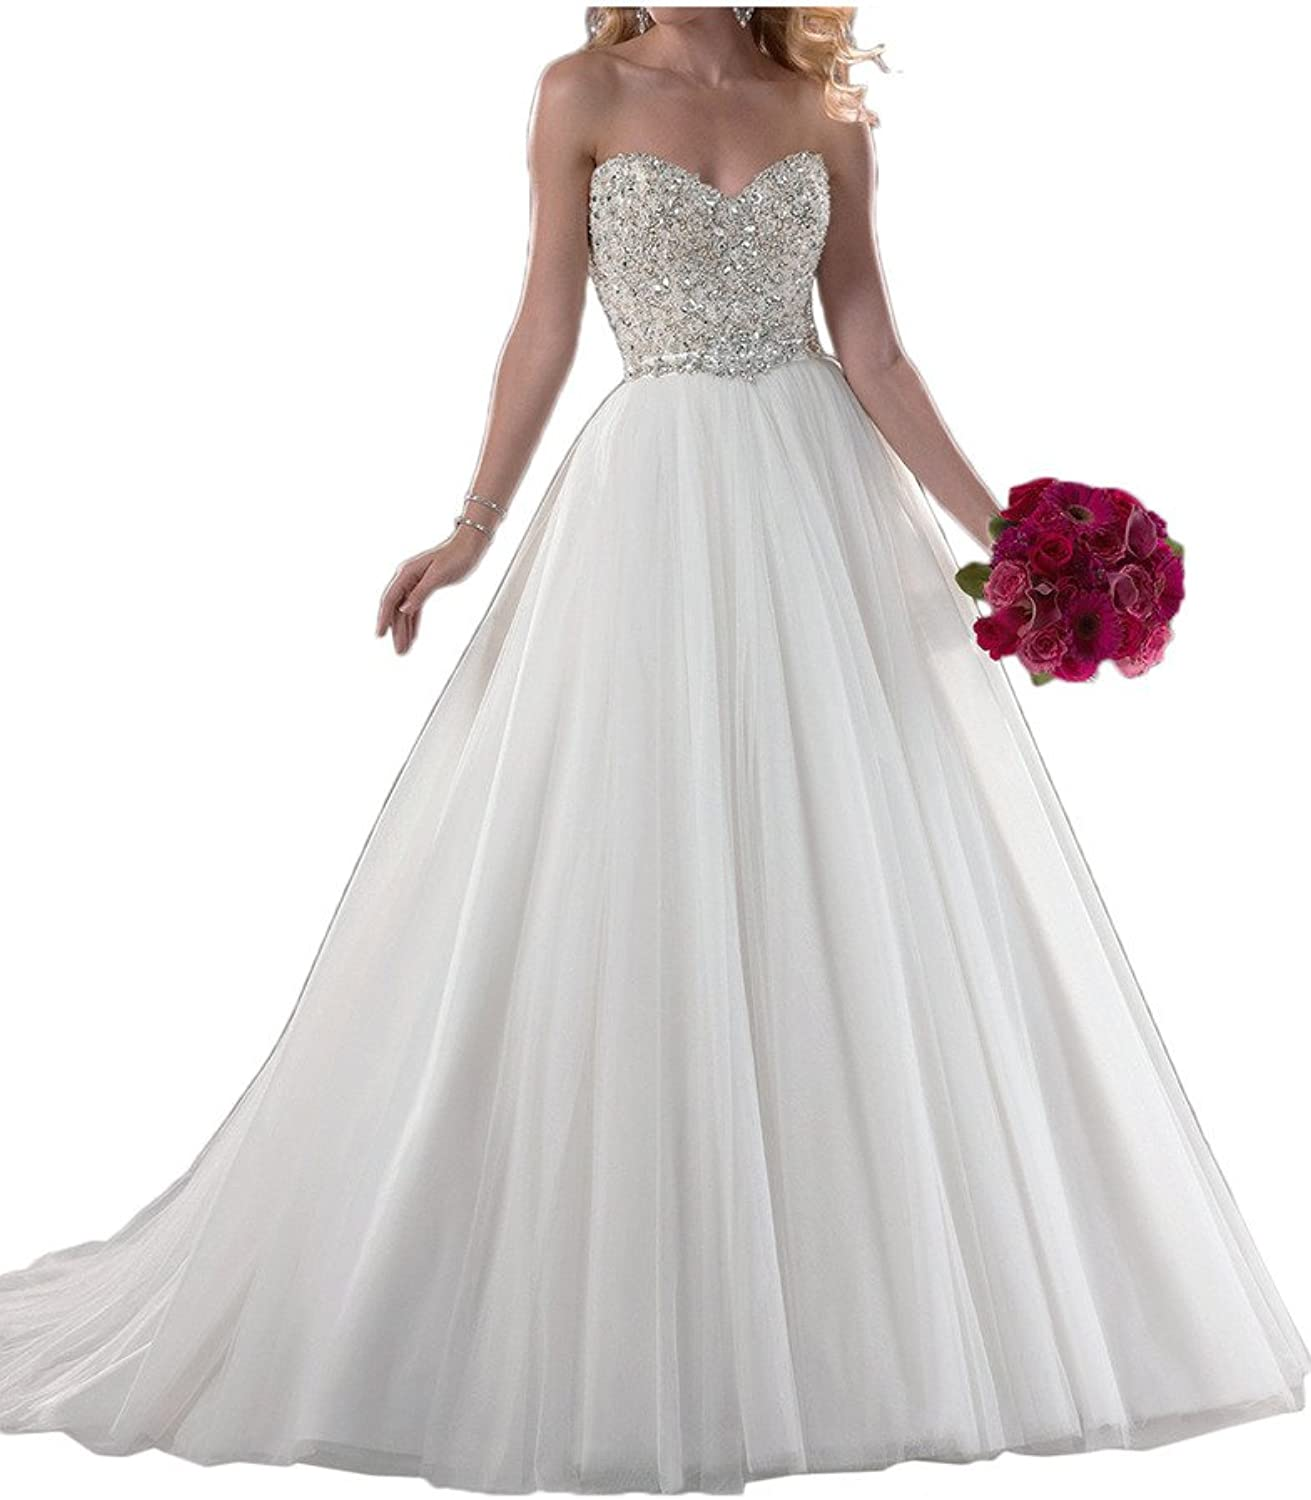 Avril Dress Sweetheart Empire Satin Wedding Gown Chapel Train Beading Rhinestone